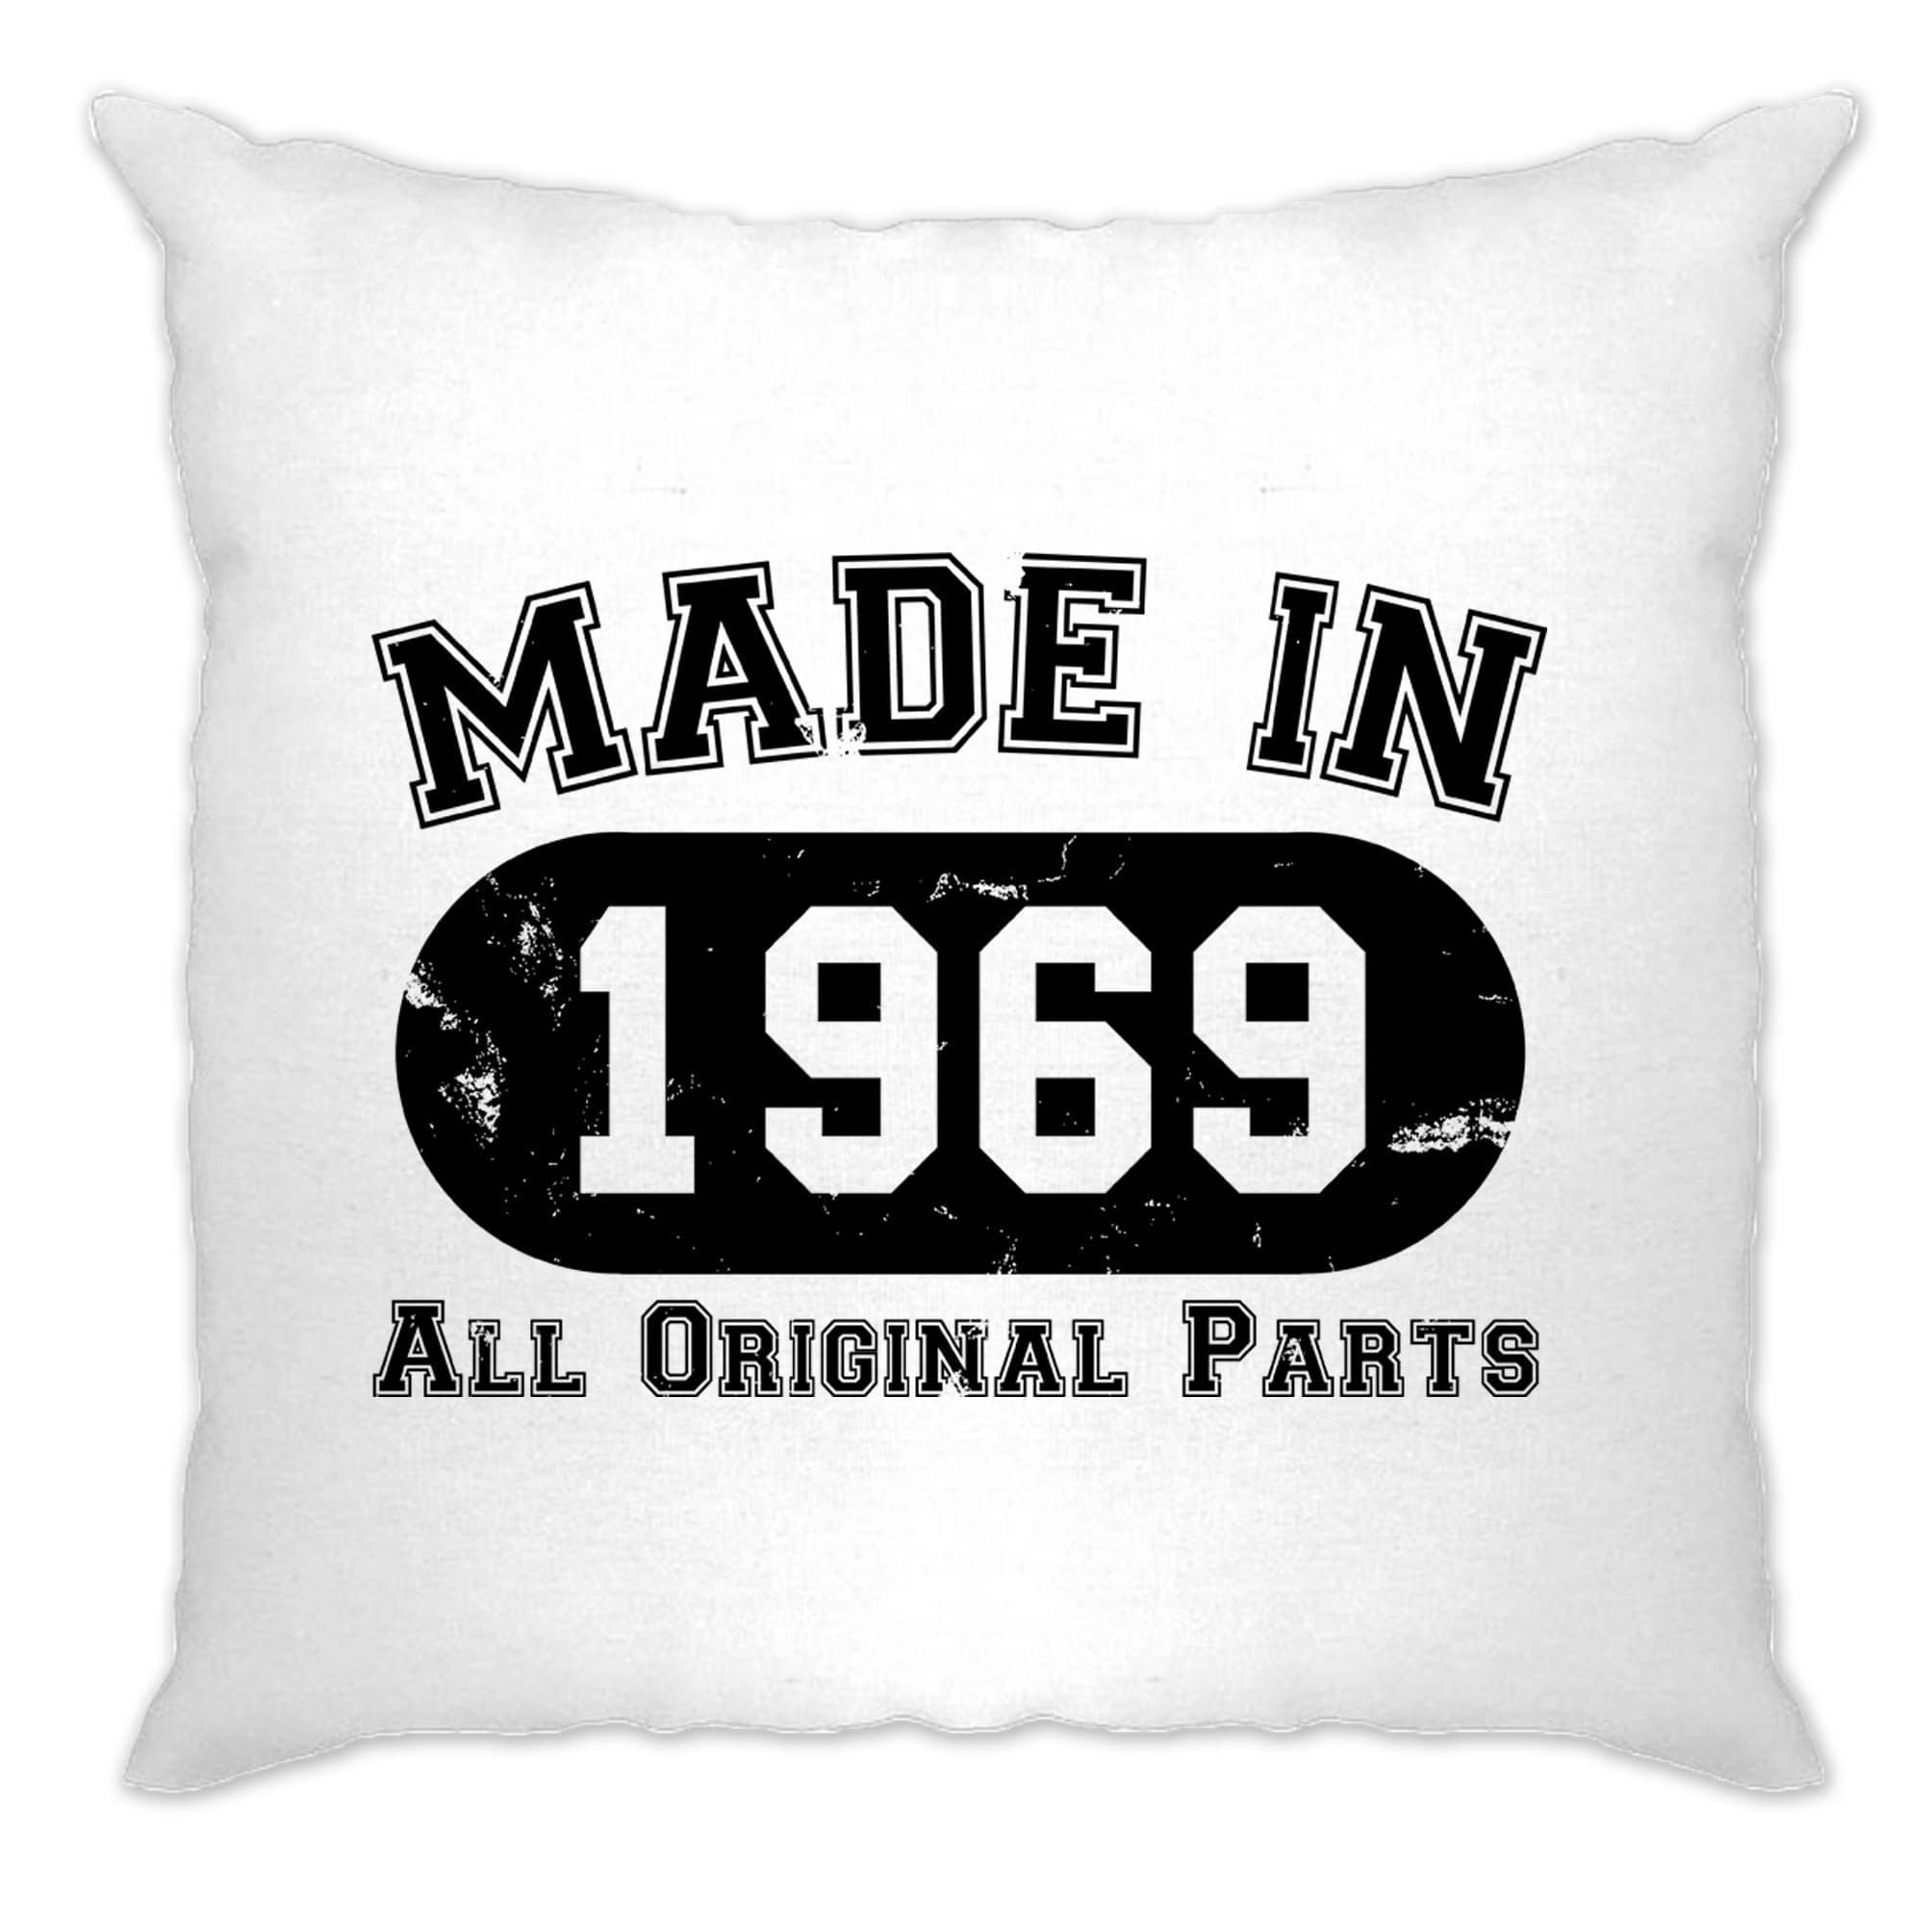 Made in 1969 All Original Parts Cushion Cover [Distressed]